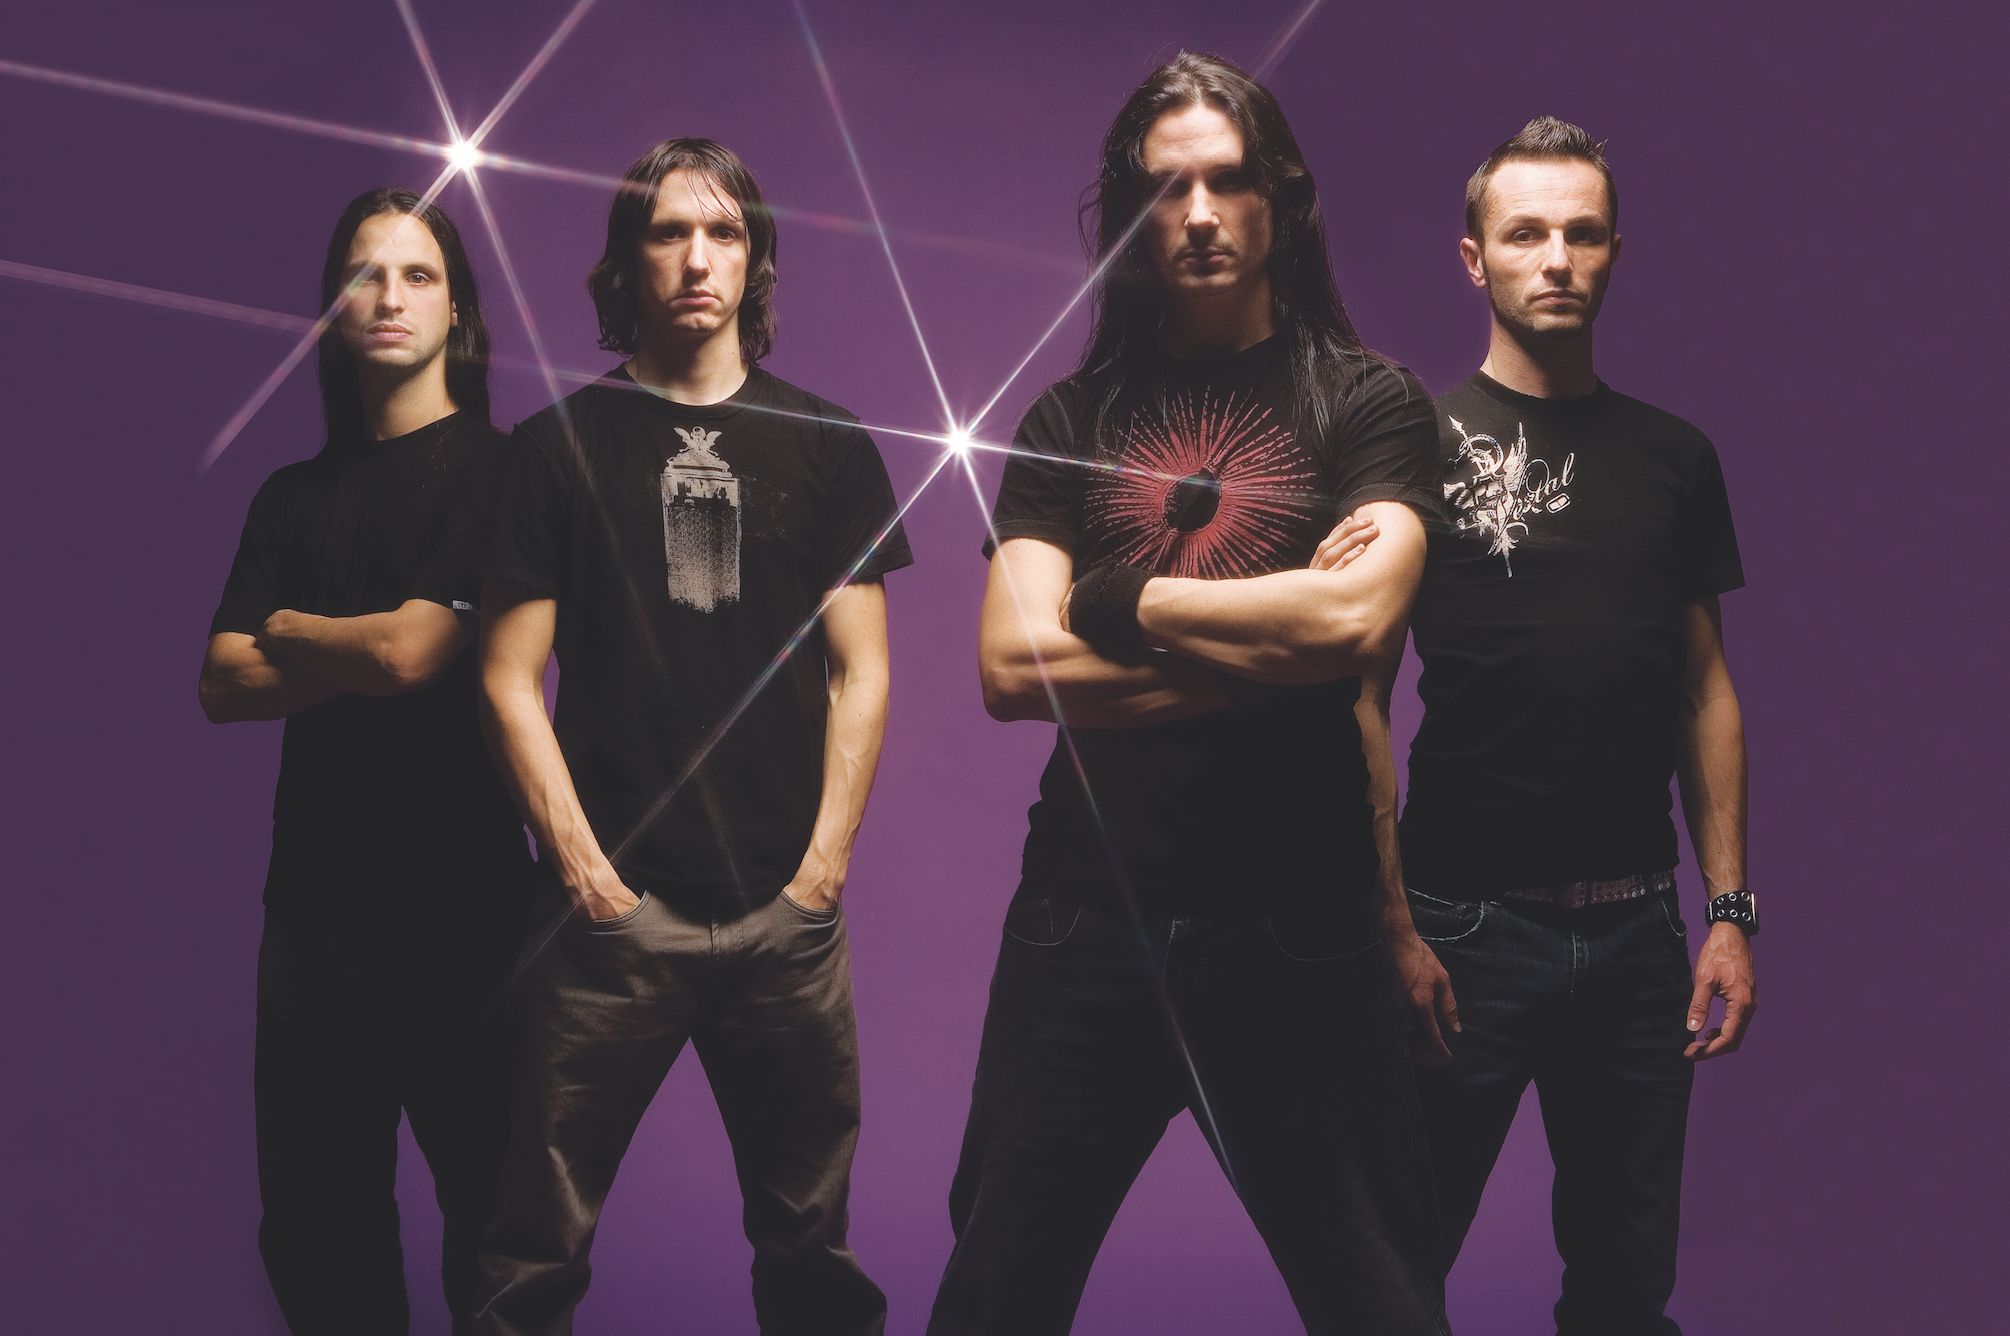 Coming to America: Gojira on First U.S. Tour, Flying Whales, Dressing-Room Fires